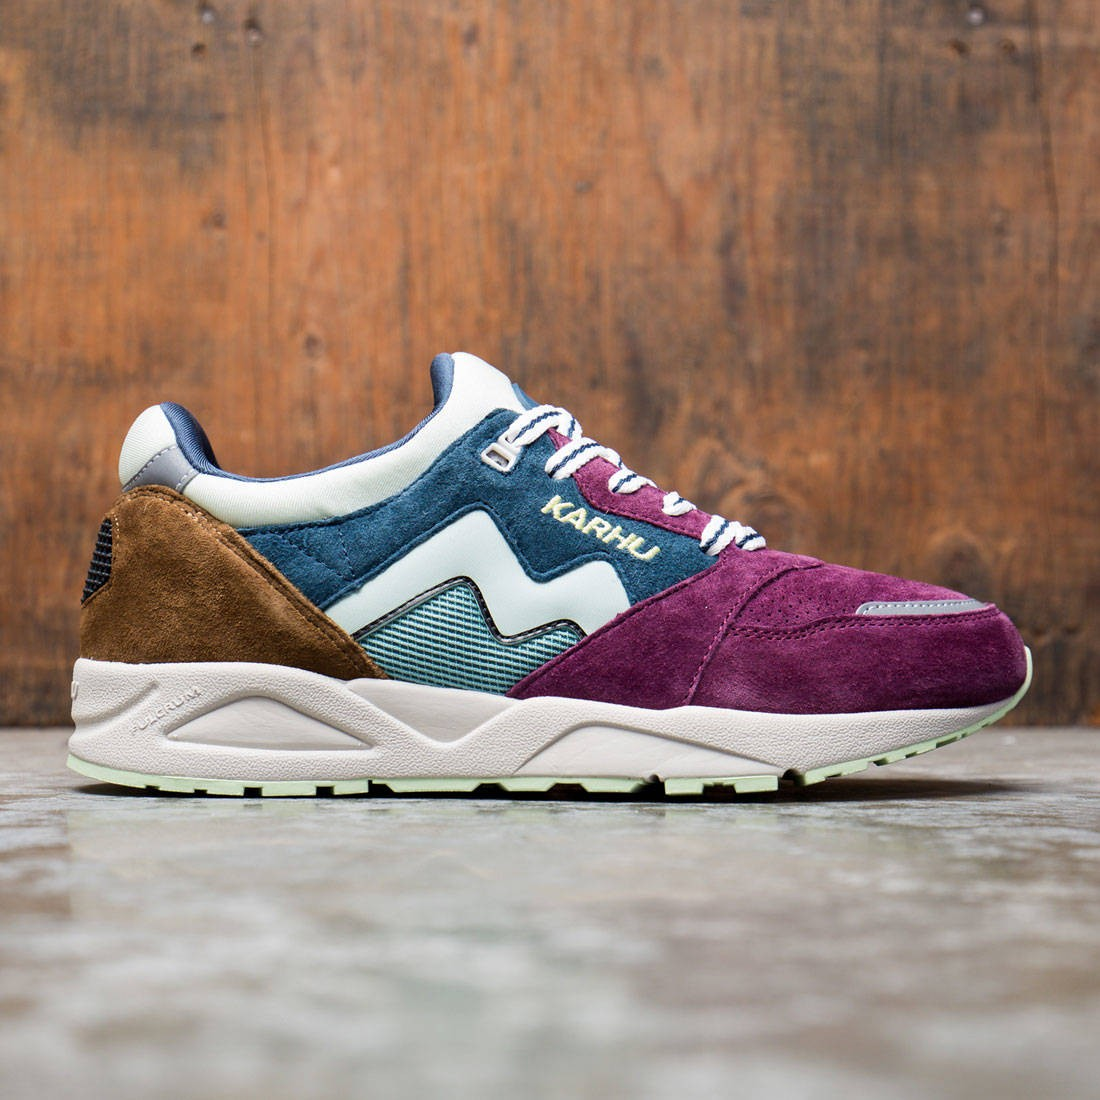 Karhu Men Aria 95 (blue / crushed violets)